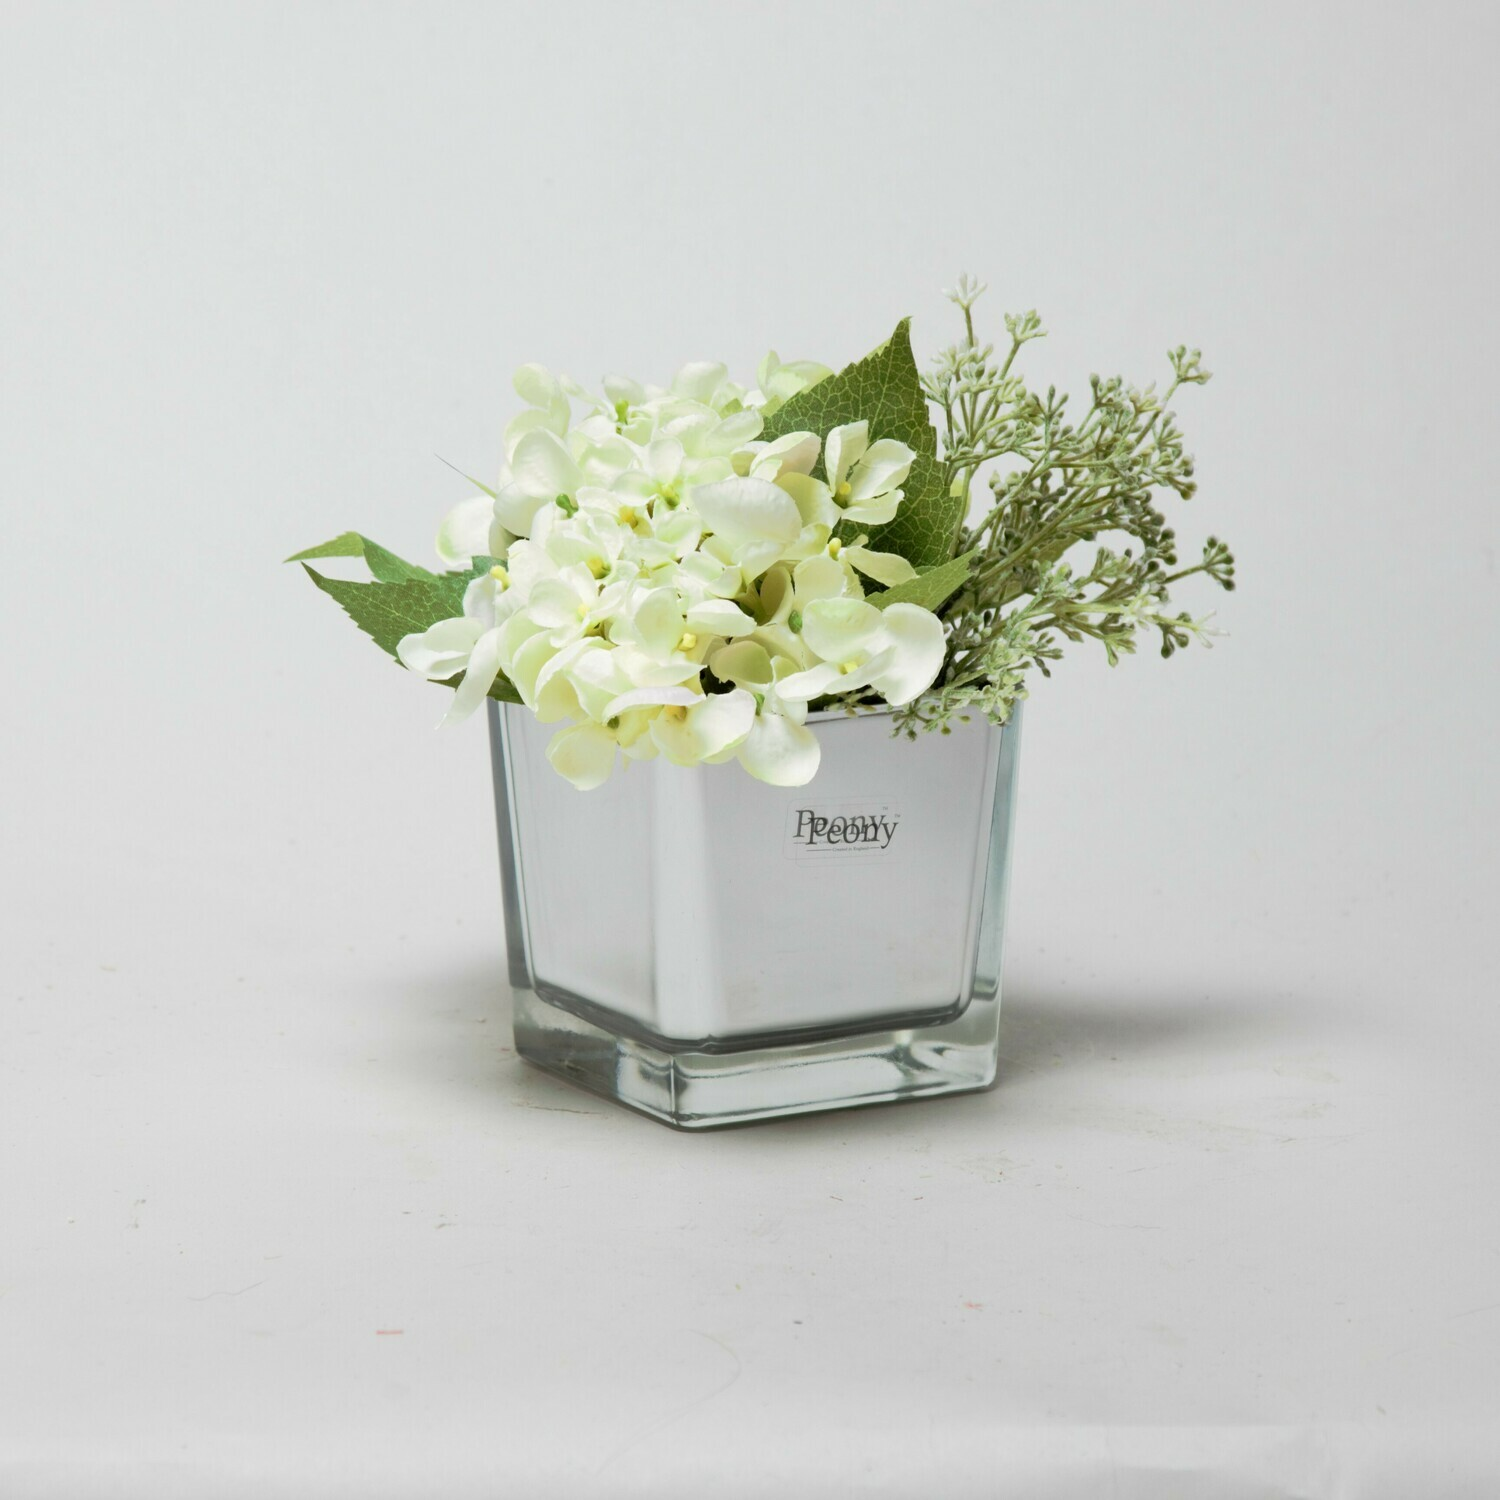 Green Hydrangea and Eucalyptus seed in a mirror cube